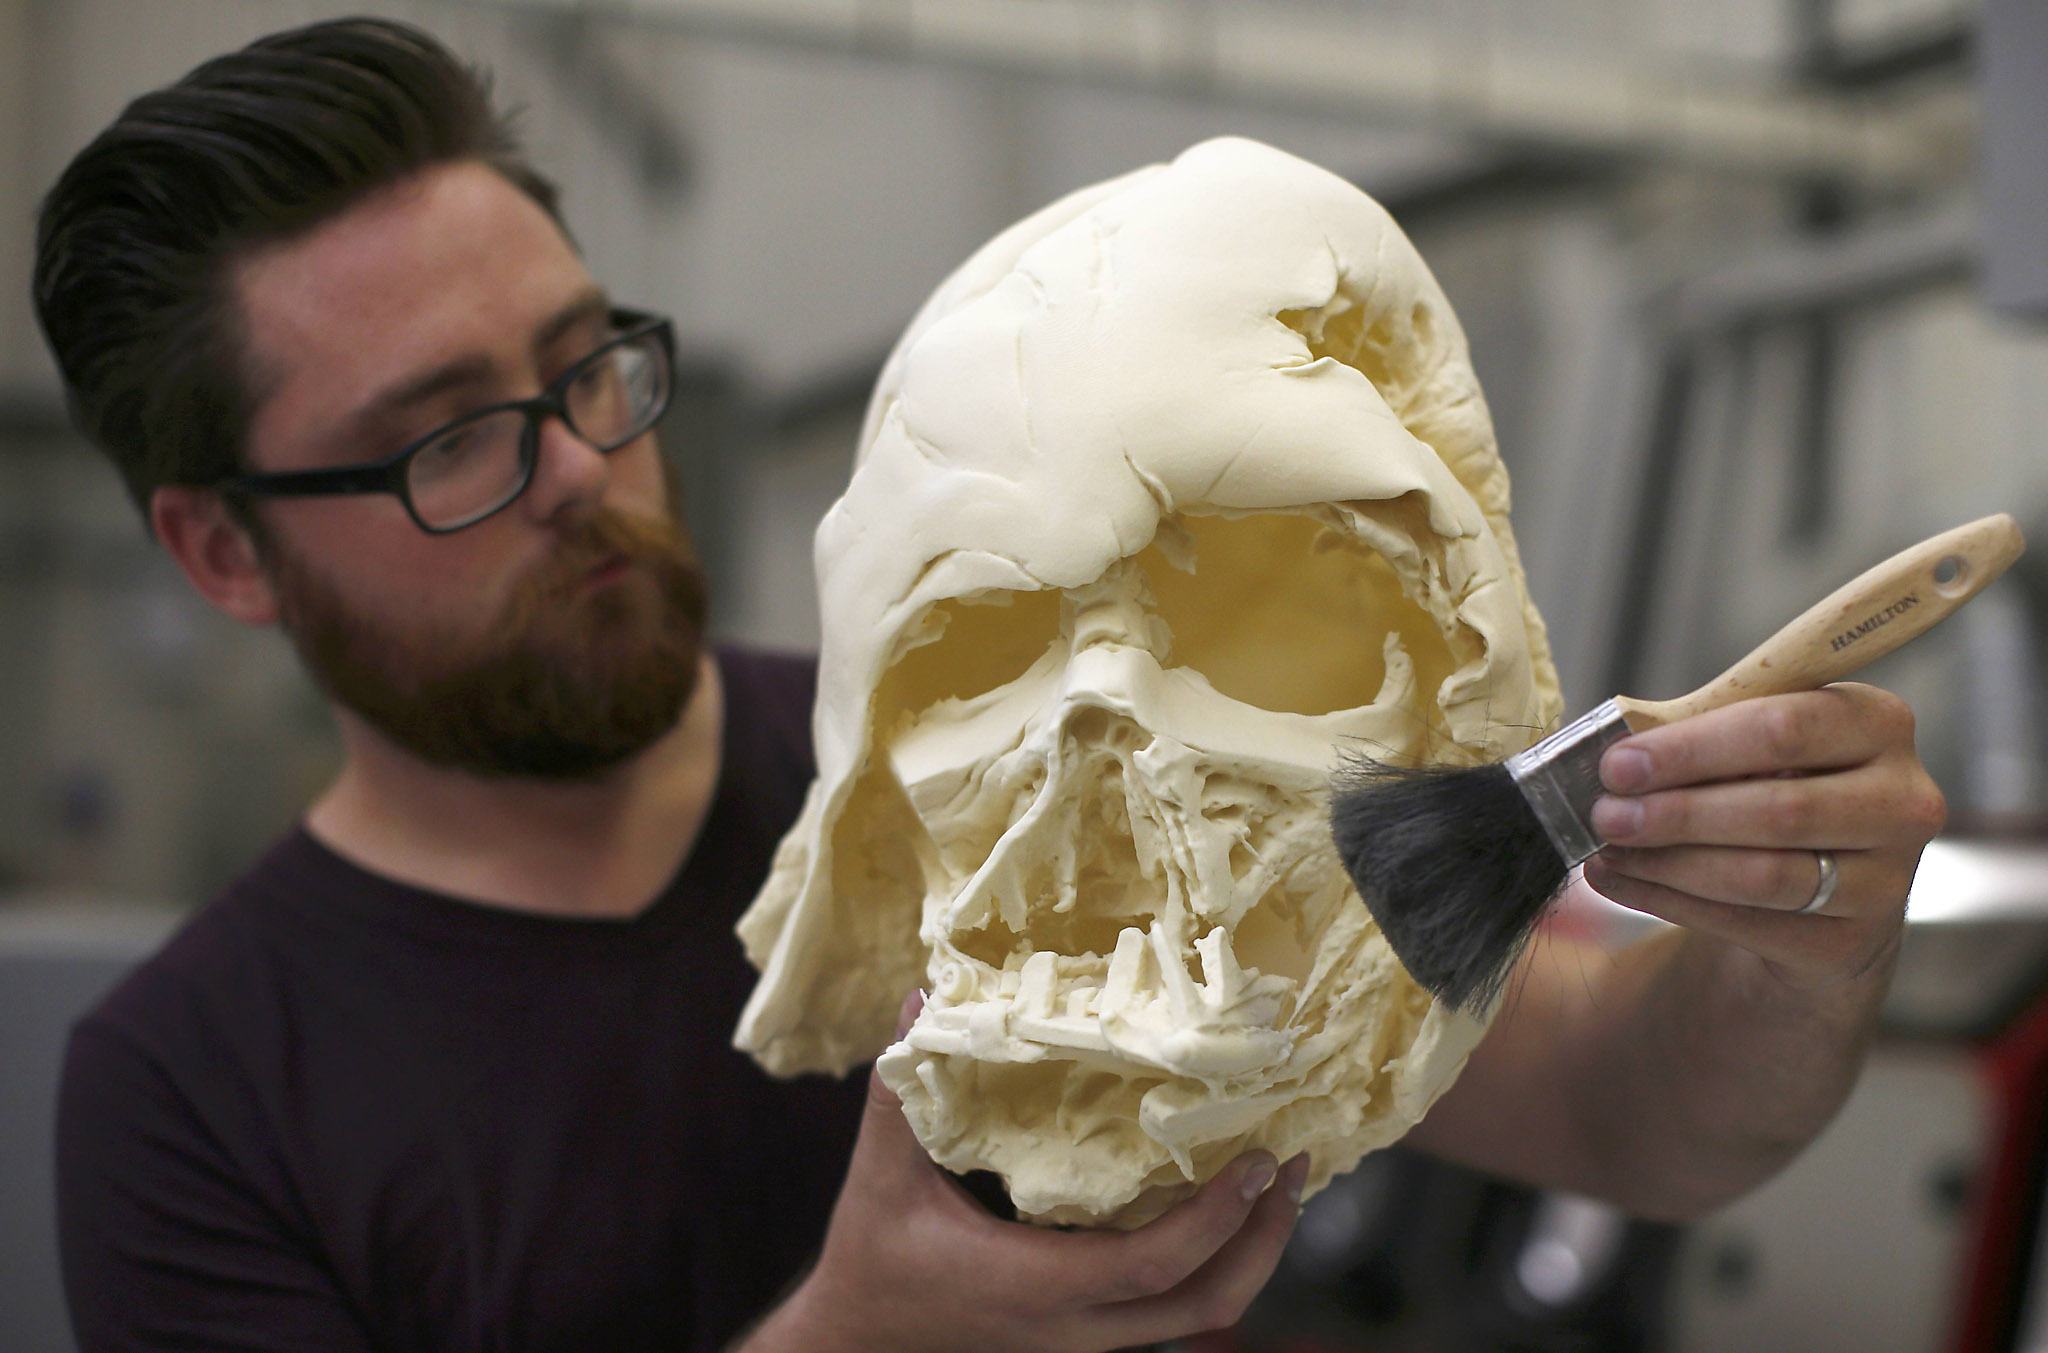 """technician holds a recently 3D printed replica of Darth Vader's melted helmet from """"Star Wars: The Force Awakens"""", in the Propshop headquarters at Pinewood Studios near London, Britain May 25, 2016.  REUTERS/Peter Nicholls"""